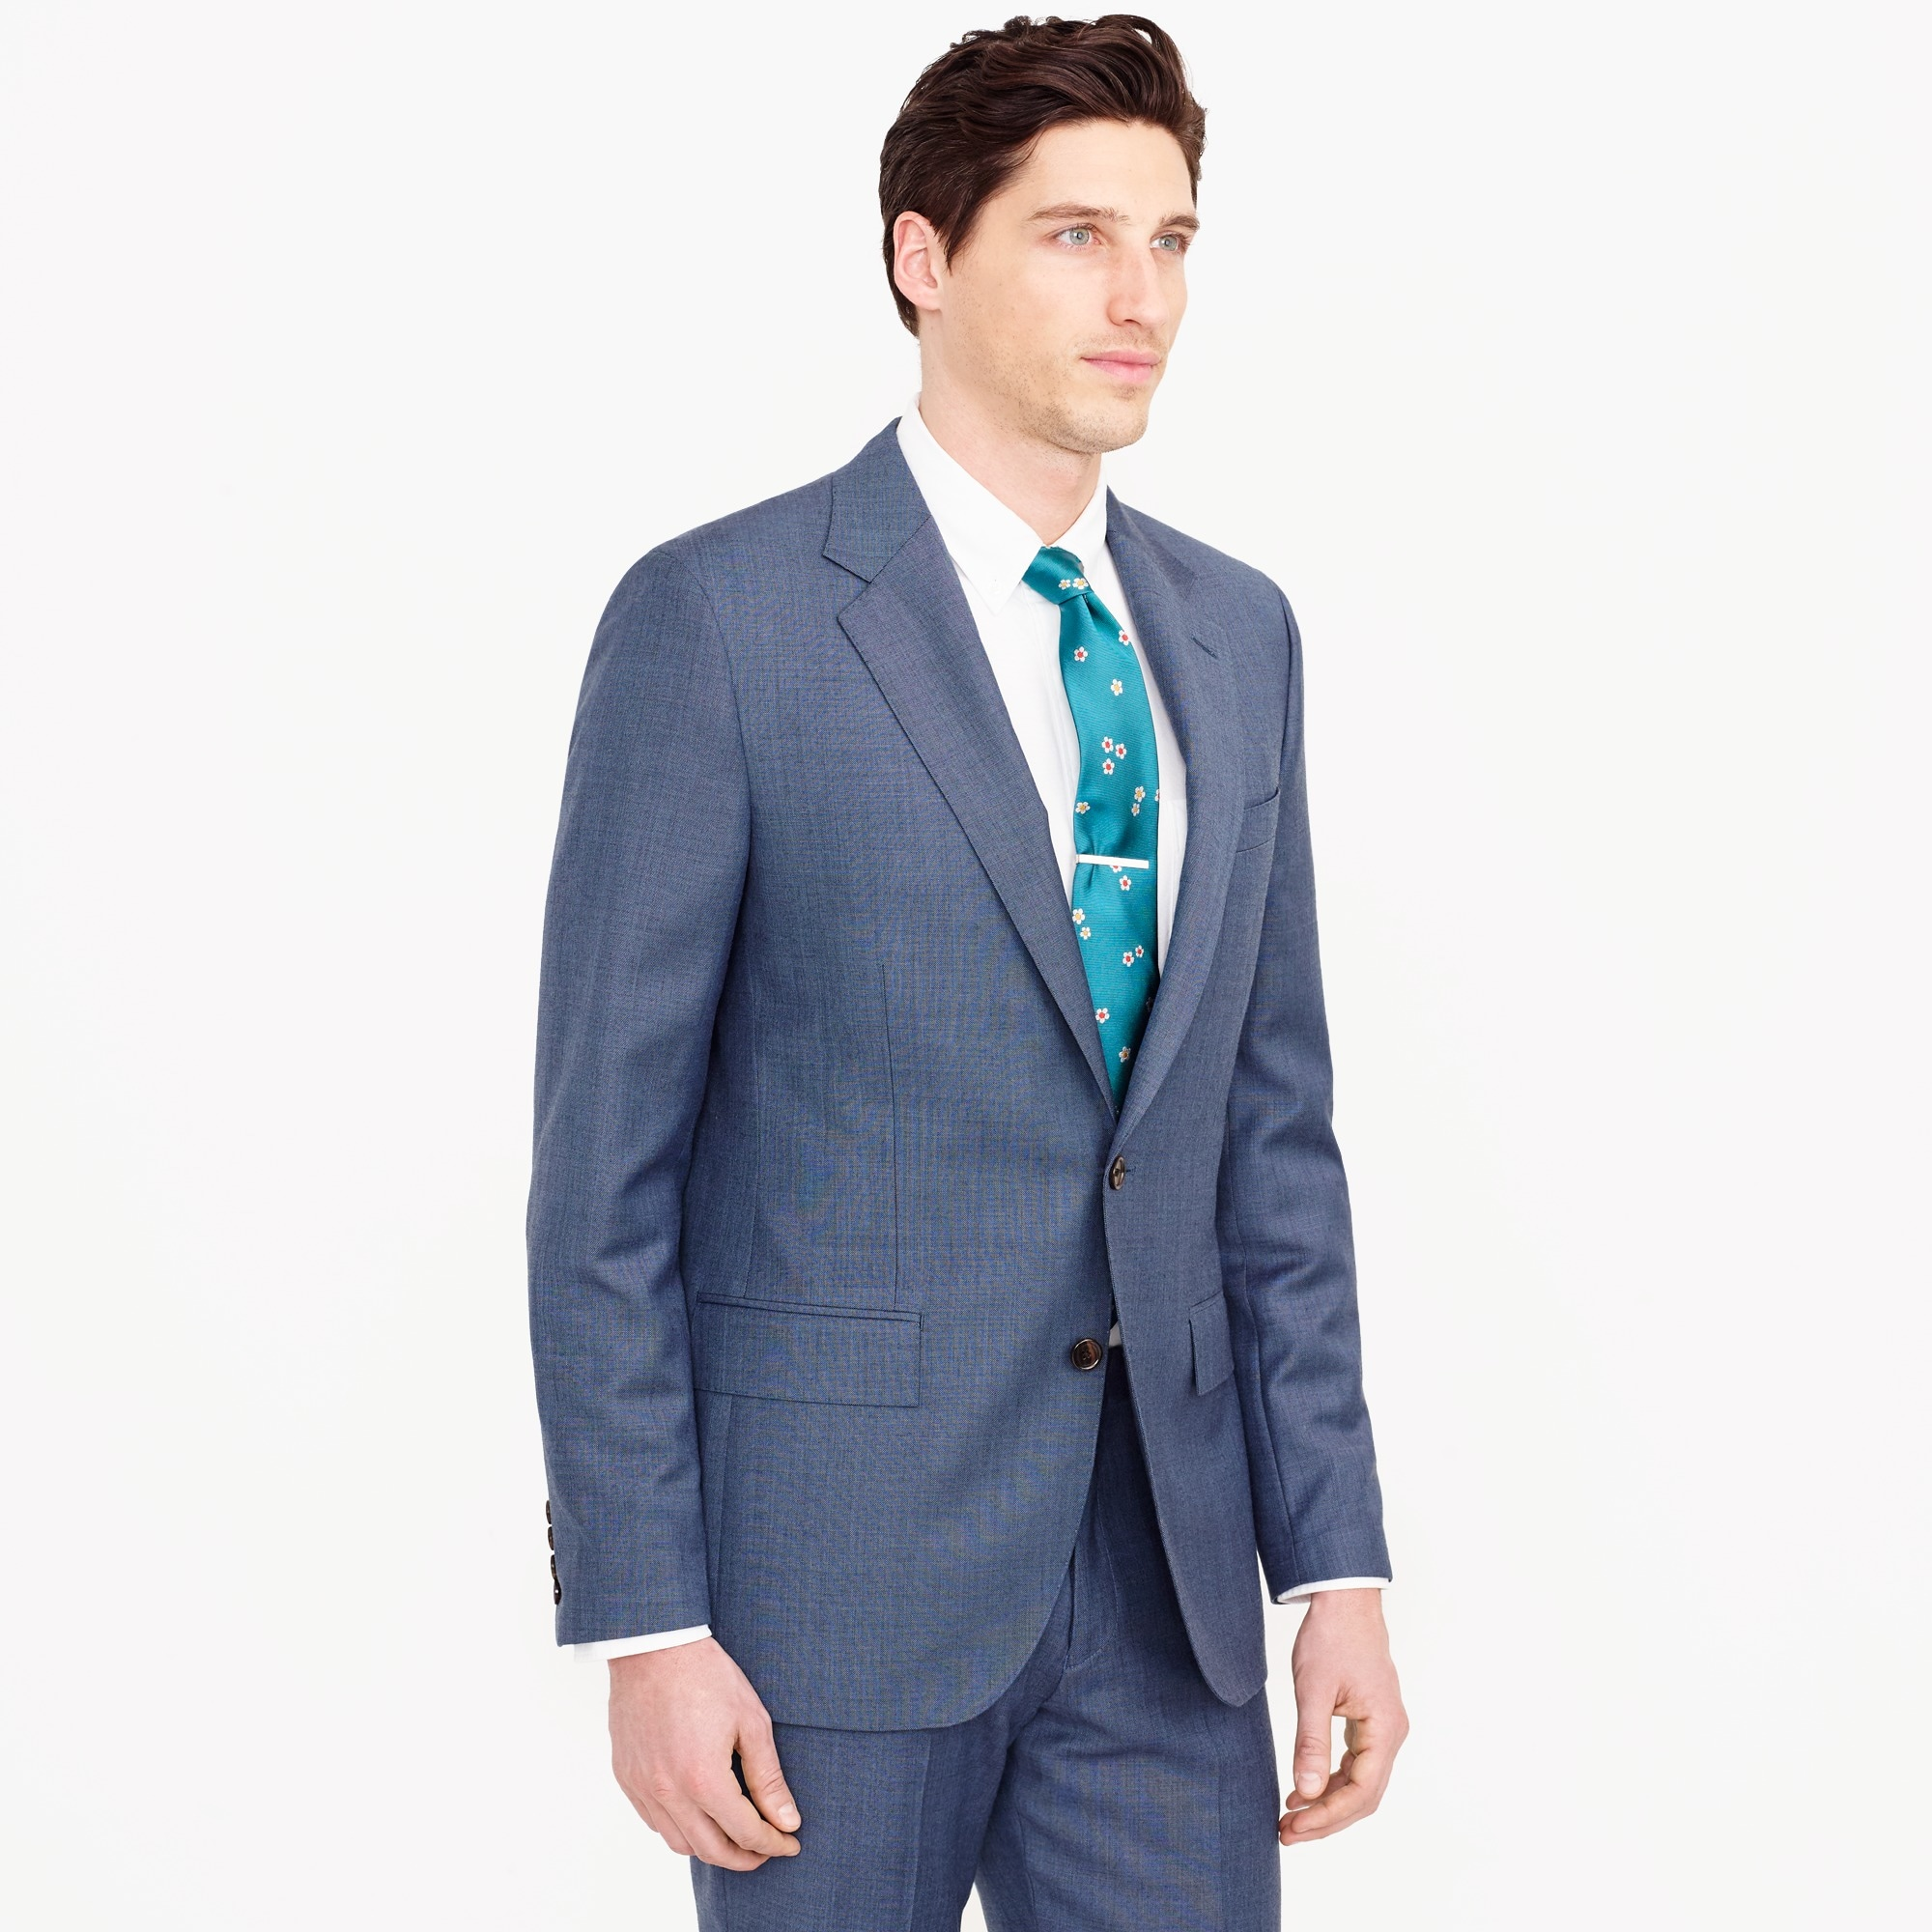 Ludlow Slim-fit wide-lapel suit jacket in Italian worsted wool